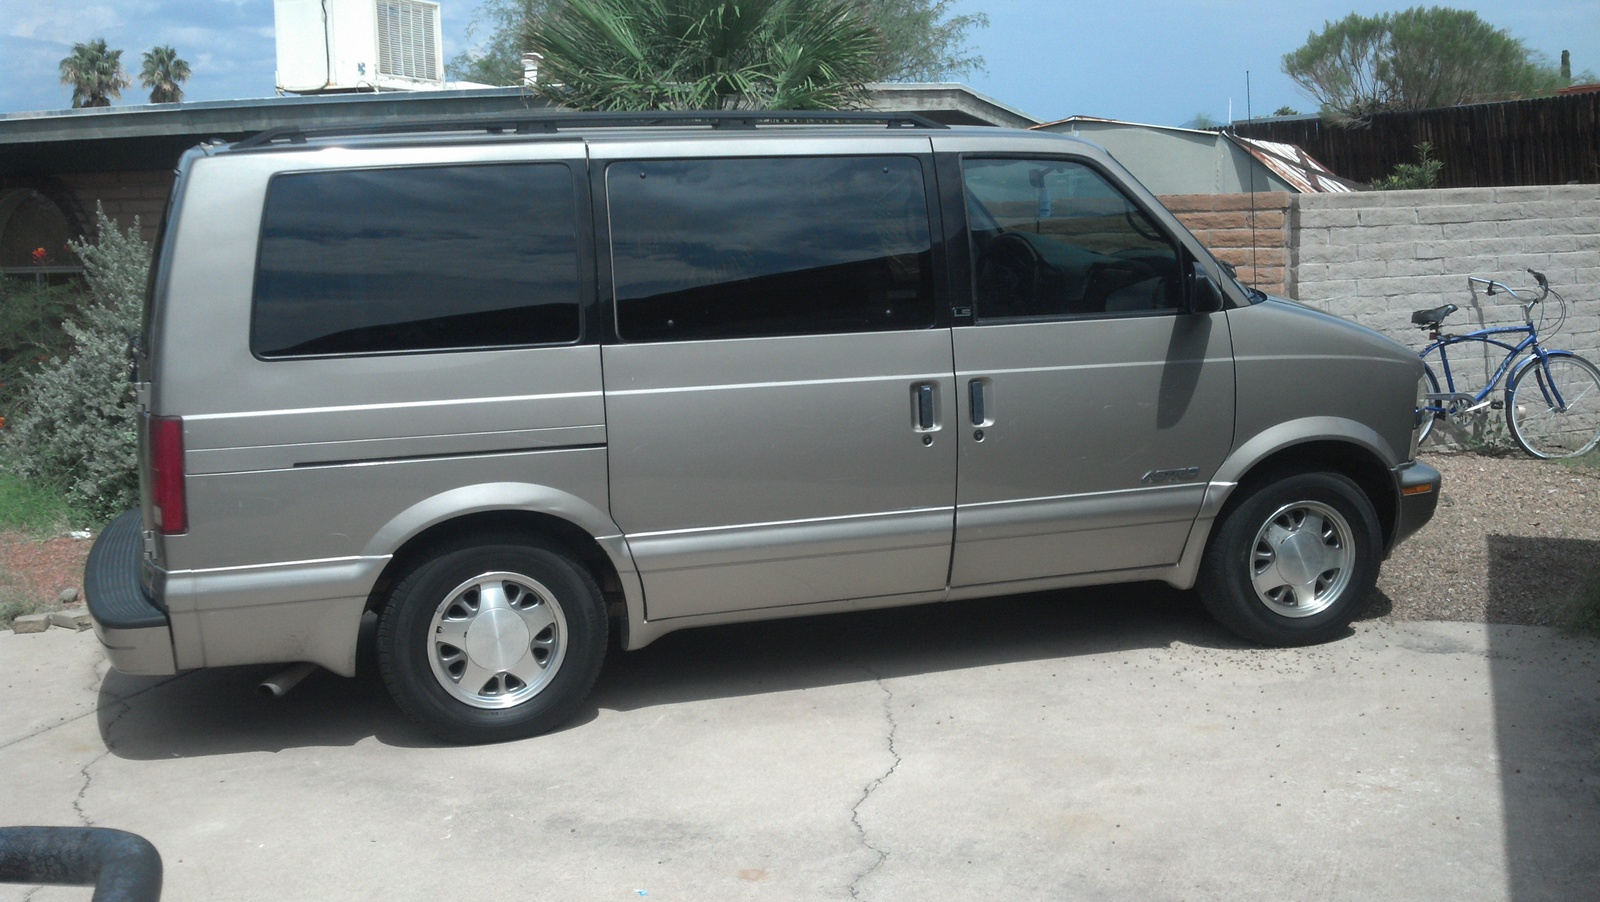 All Chevy 2001 chevy astro van : 2001 Chevrolet Astro – pictures, information and specs - Auto ...